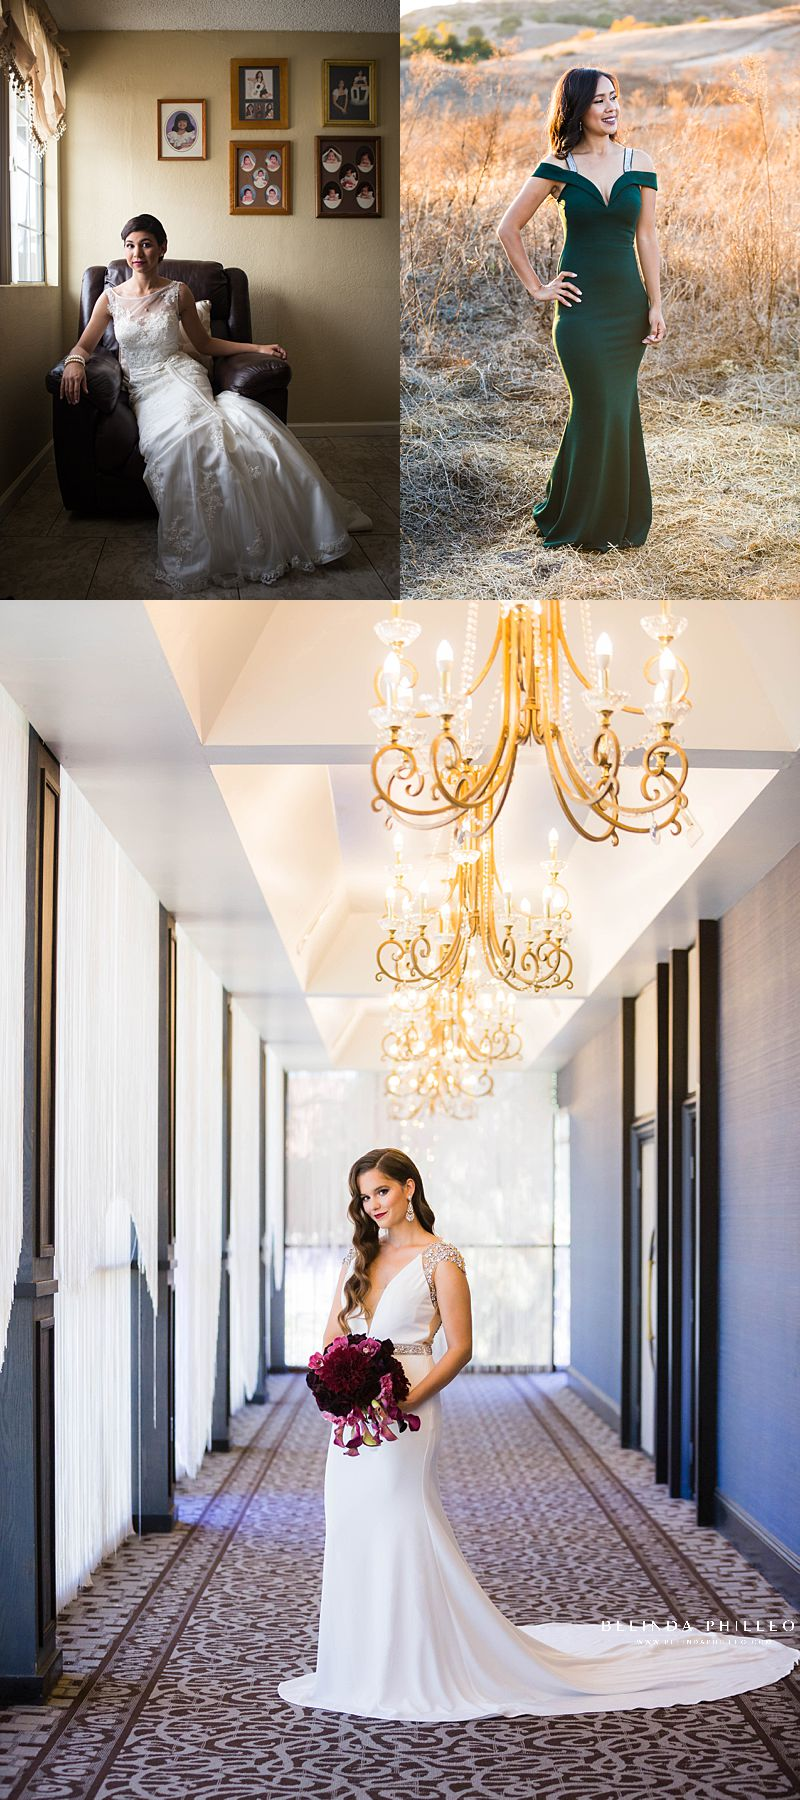 Posing tips for brides, creating curves and separation